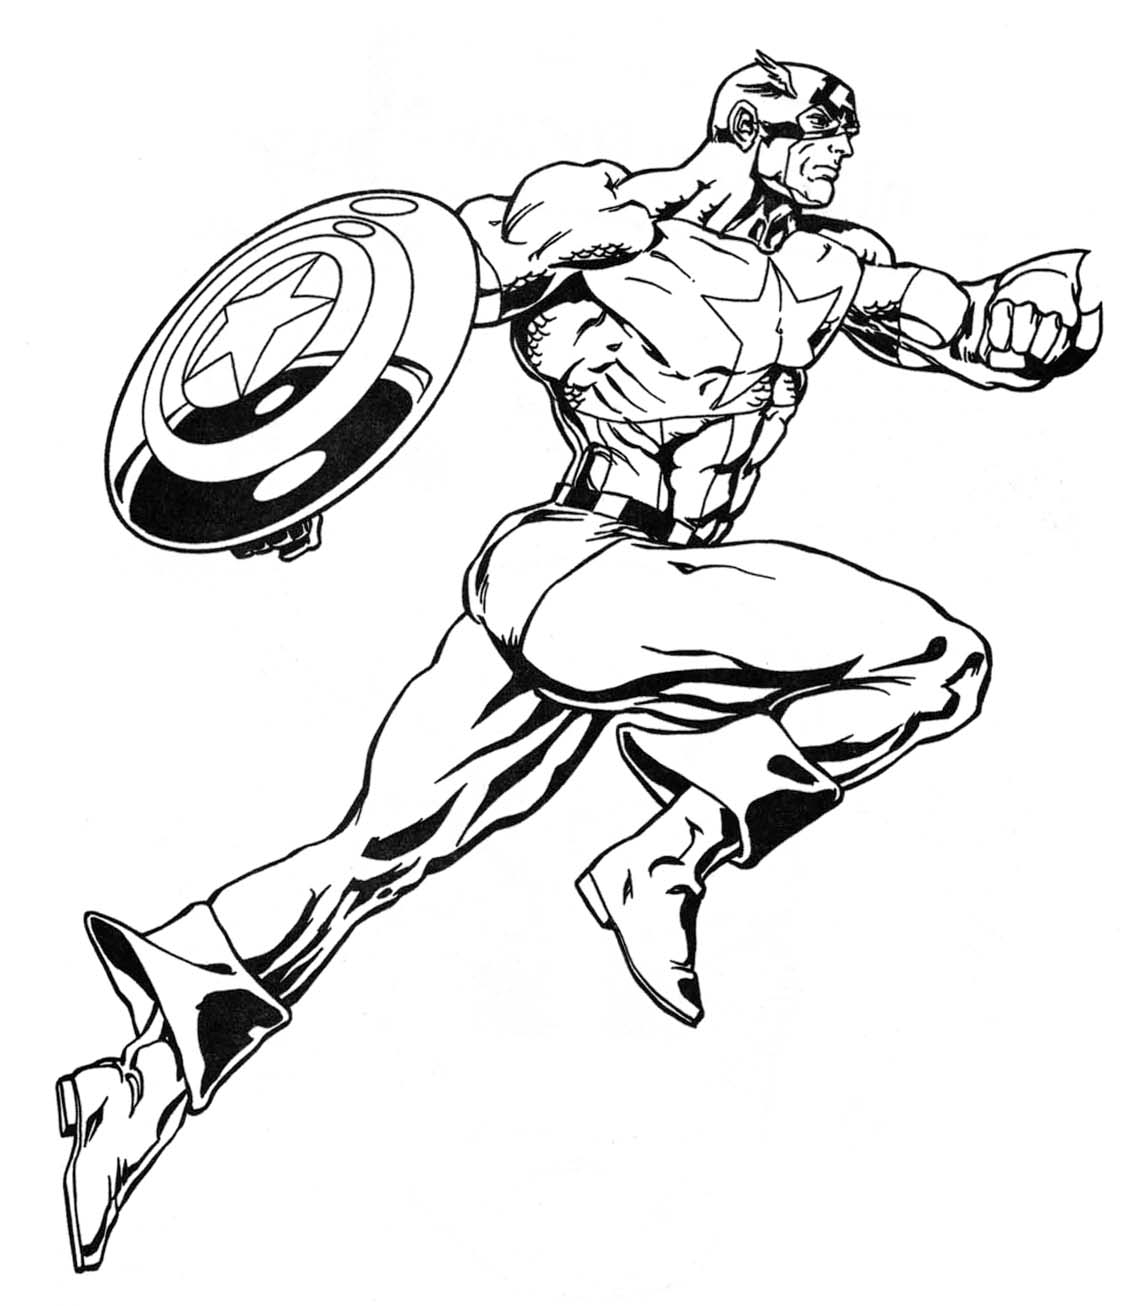 Superhero Thanos Coloring Pages: Marvel Super Heroes